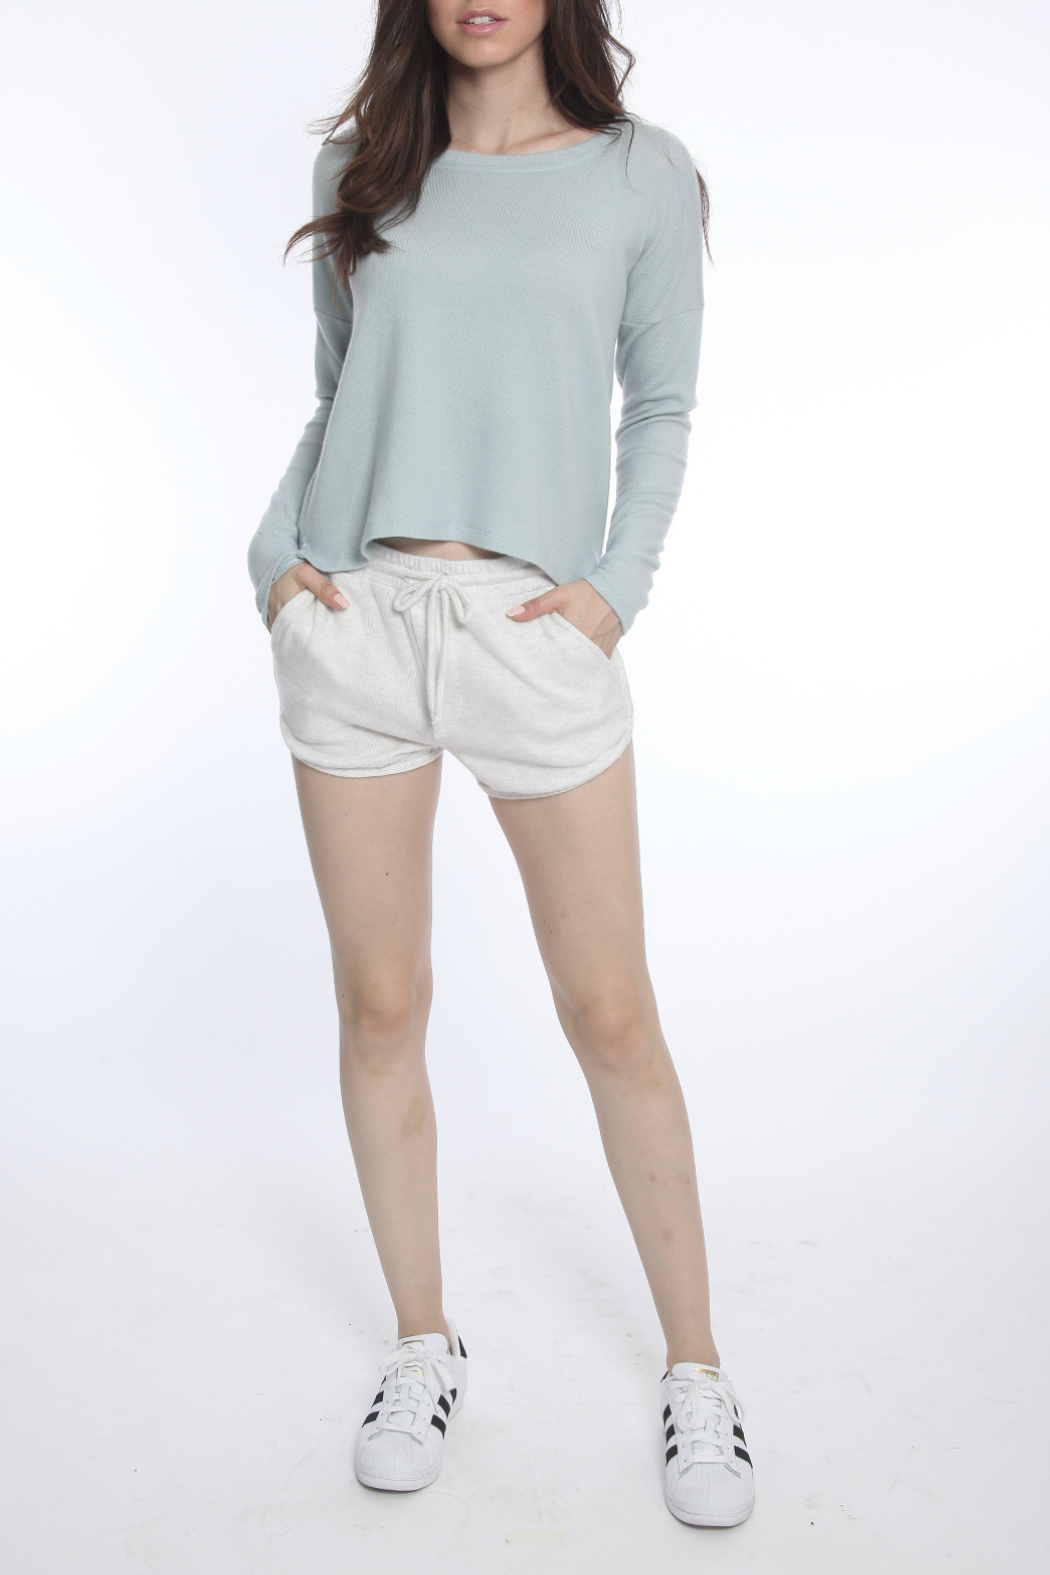 River + Sky  Long Sleeve Soft Knit Top - Main Image